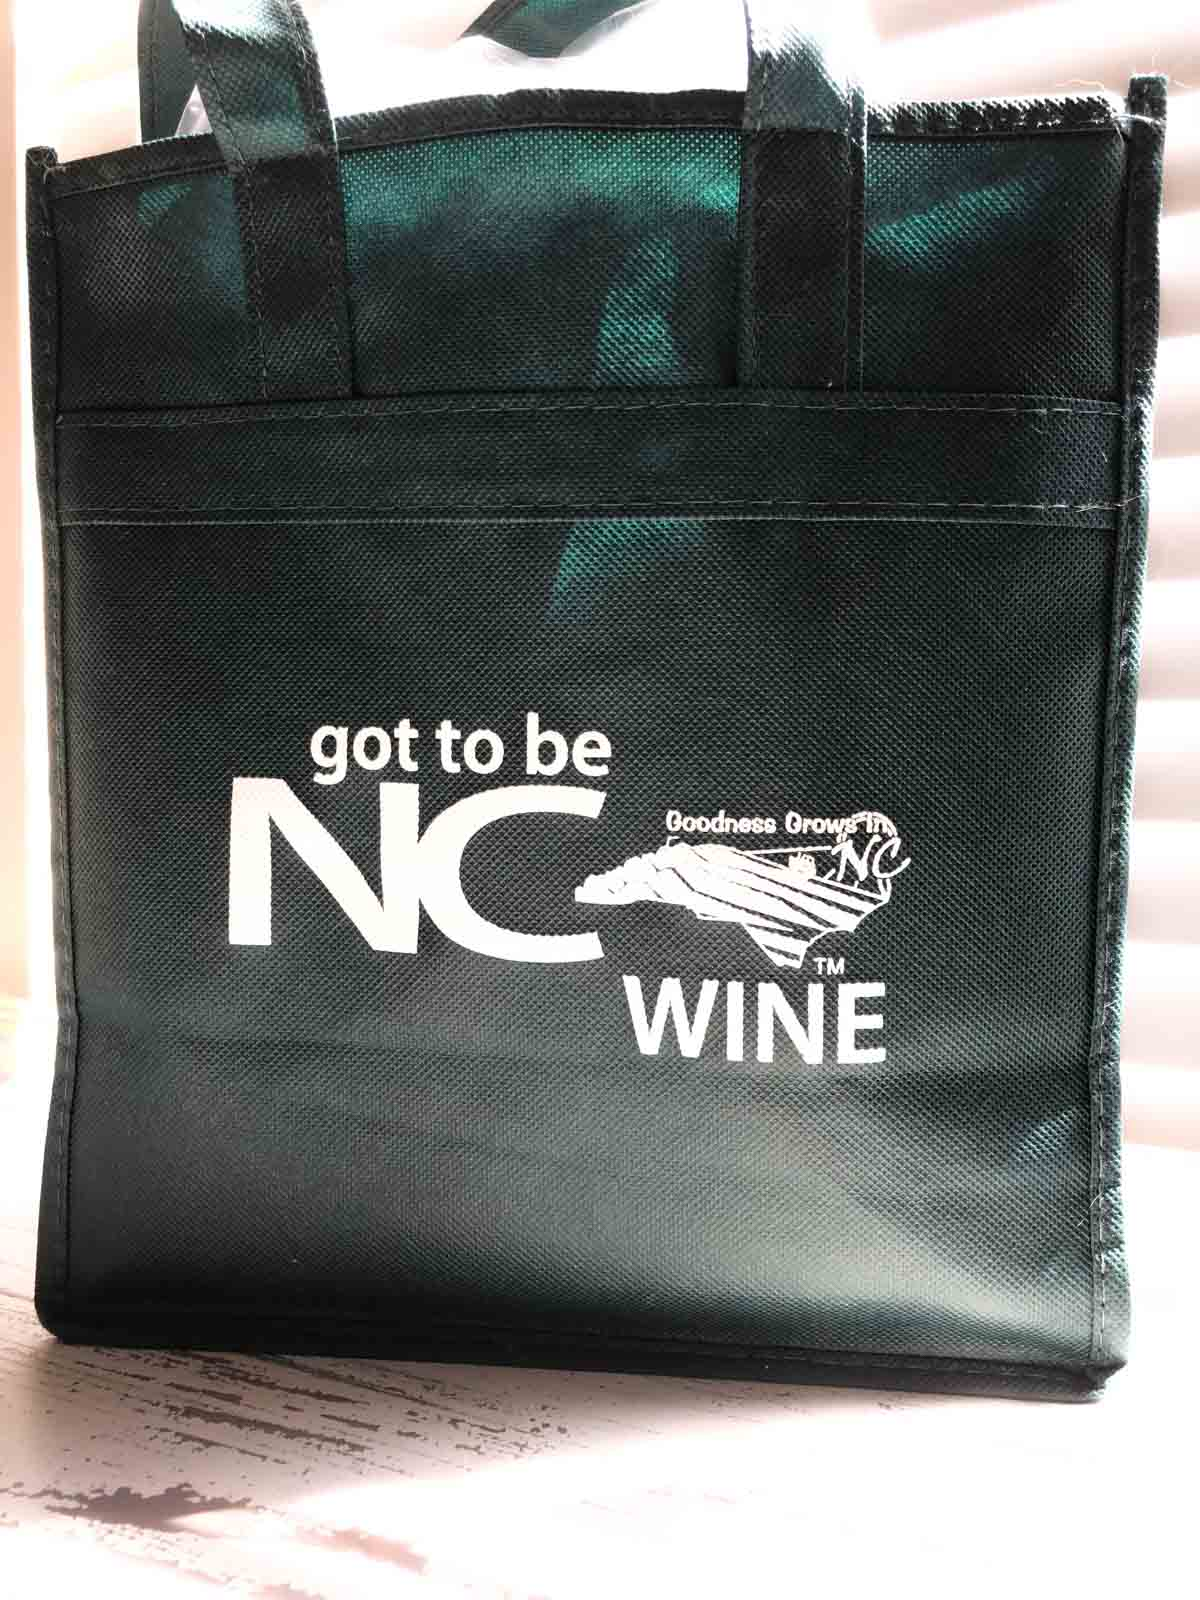 September is North Carolina Wine Month! Read about my tour to Gregory Vineyards in Angier and Grove Winery in Gibsonville, with a final stop at the Wine Feed Durham to try a bunch of NC wines. #northcarolinawinemonth #ncwine #gottobenc #ncwinemonth #ncsocial